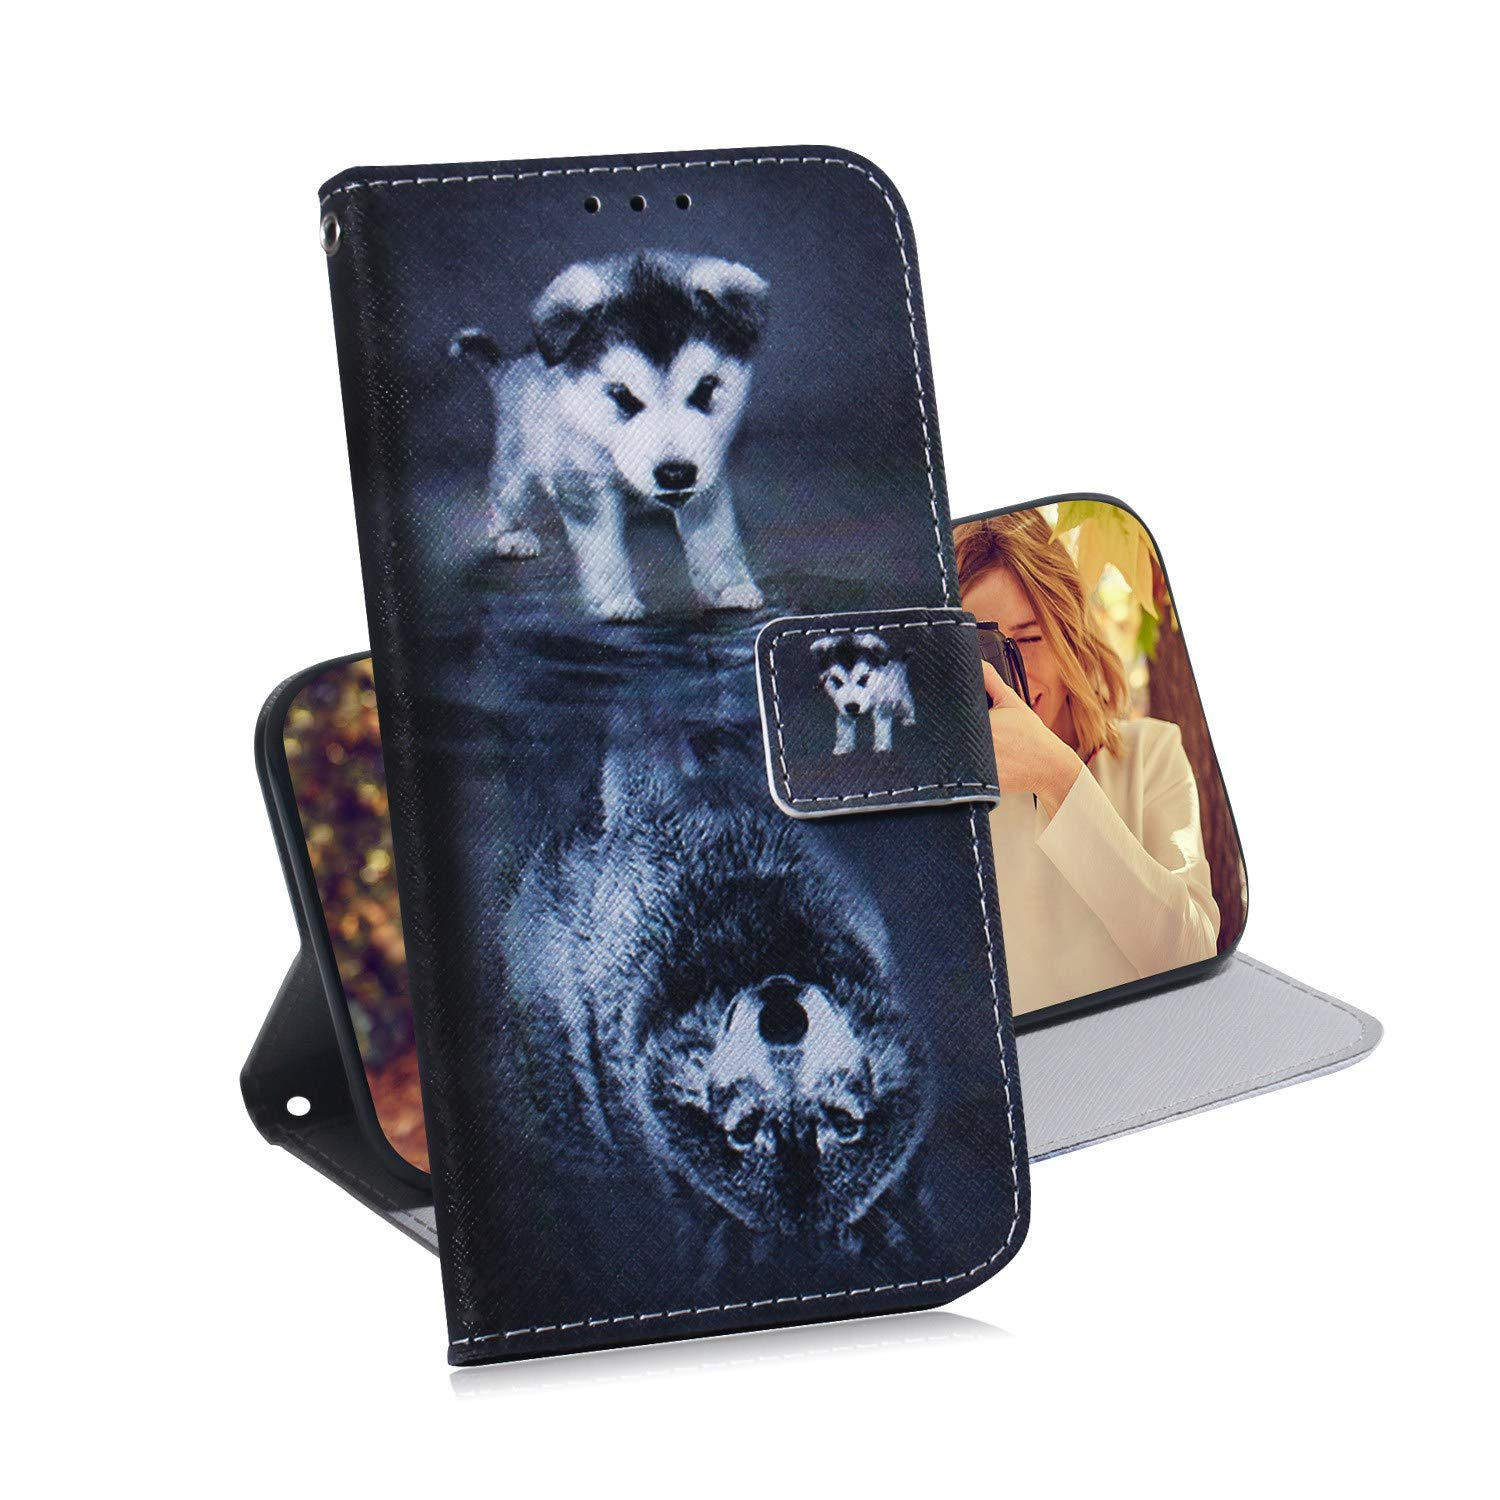 Huawei Y7 2019// Y7 Pro 2019// Y7 Prime 2019 Case Draamvol Phone Cover for Huawei Y7 2019// Y7 Pro 2019// Y7 Prime 2019 Owl Flip Protective PU Leather Wallet Bumper Kickstand Magnet Card Holder